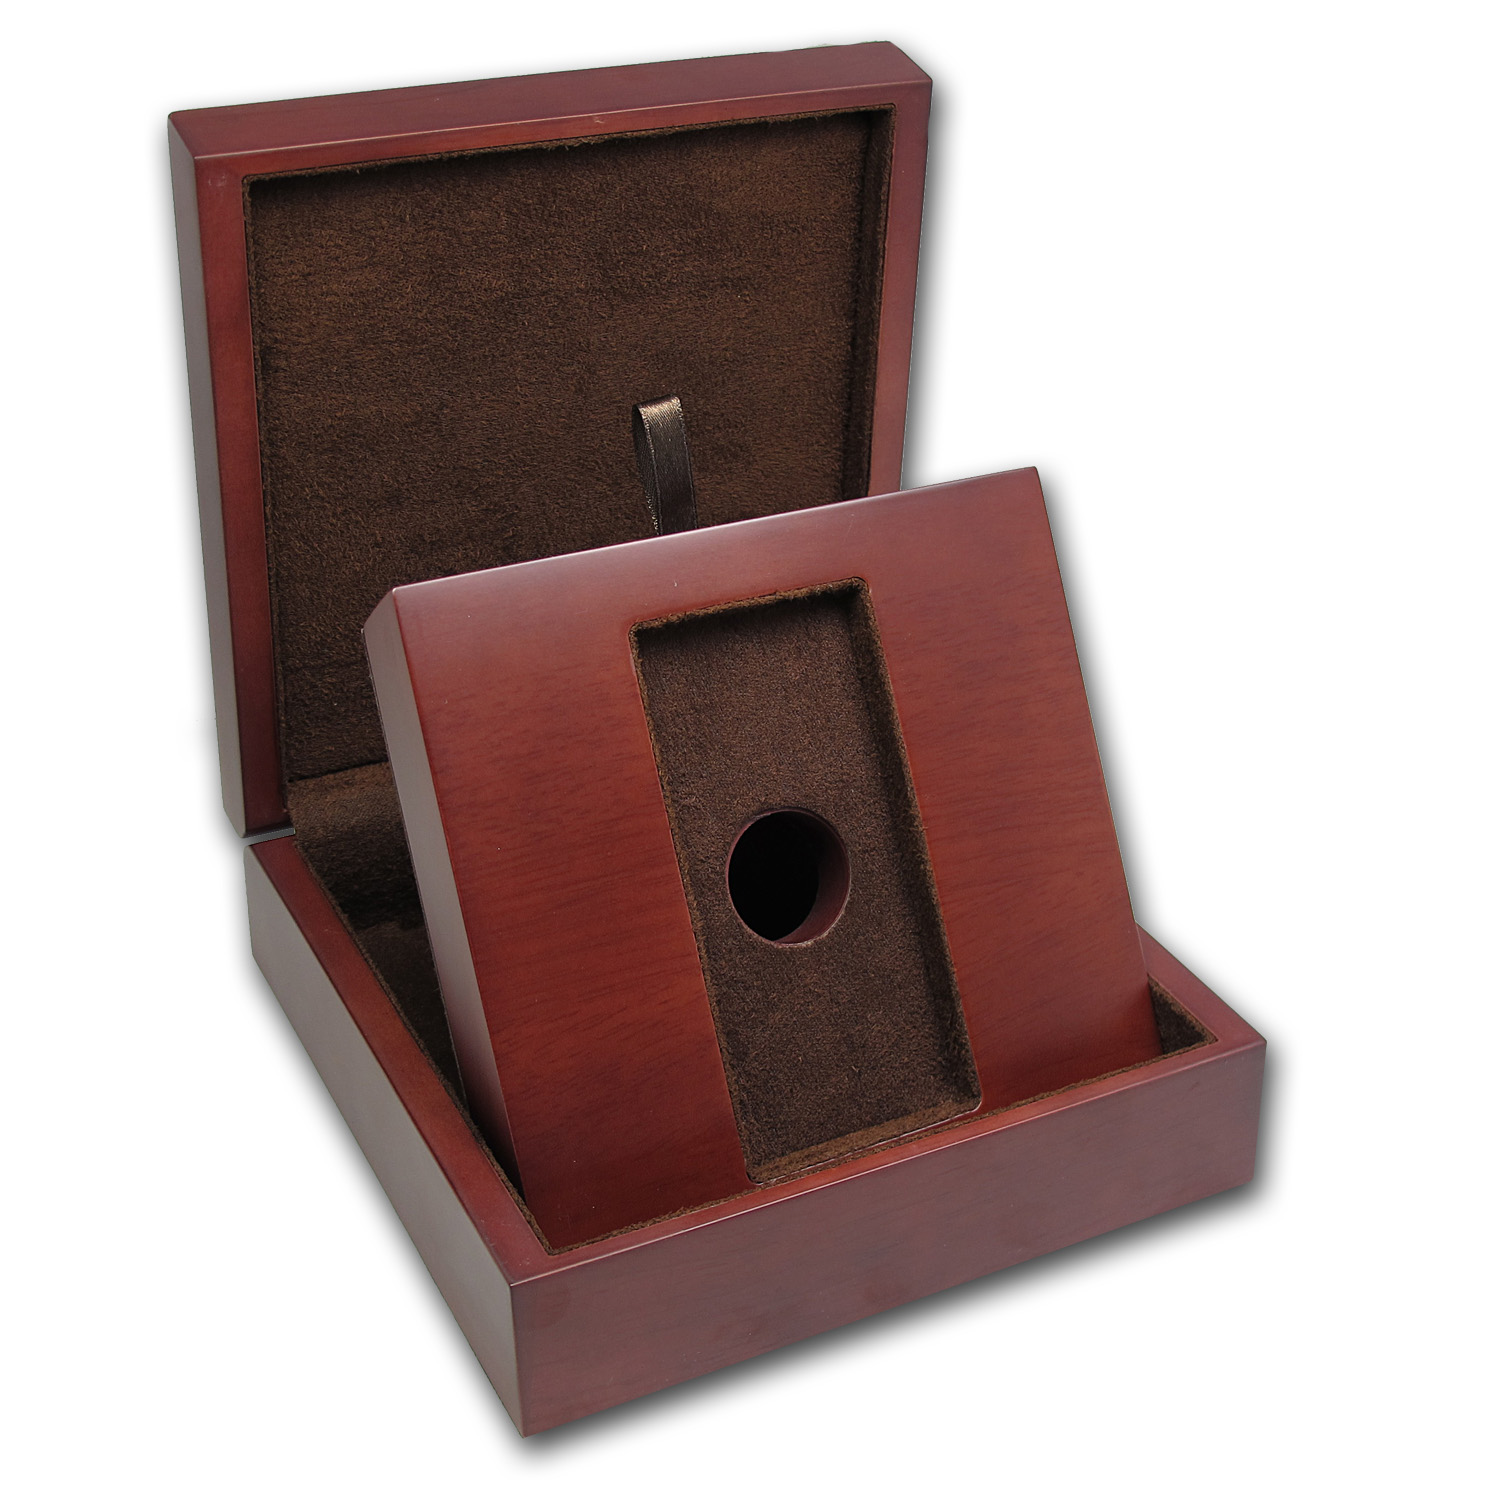 APMEX Wood Presentation Box - 1 Kilo RCM Gold Bar